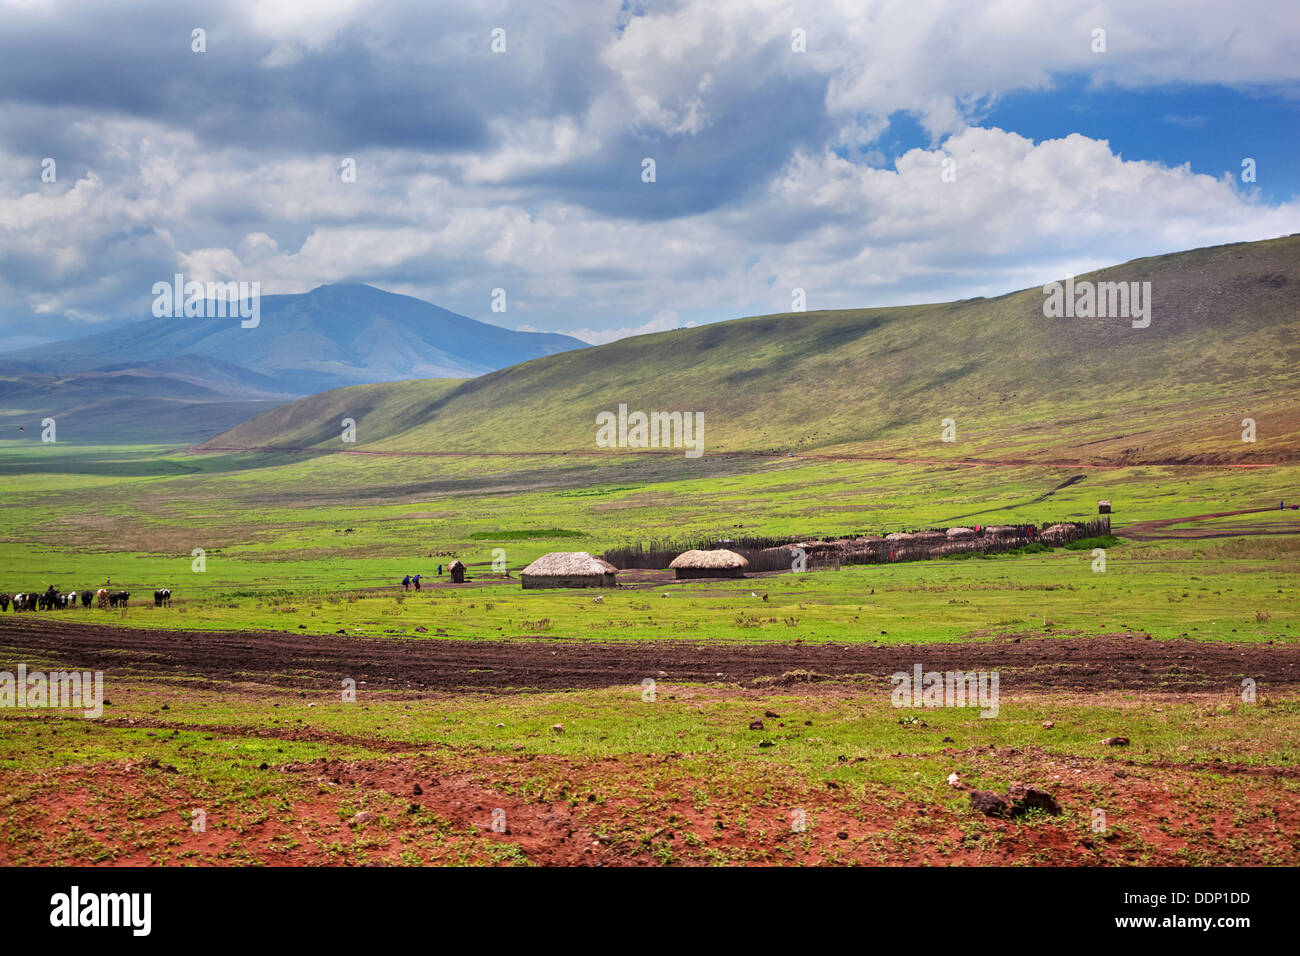 Savannah landscape in Tanzania, Africa. Maasai houses in the valley. - Stock Image